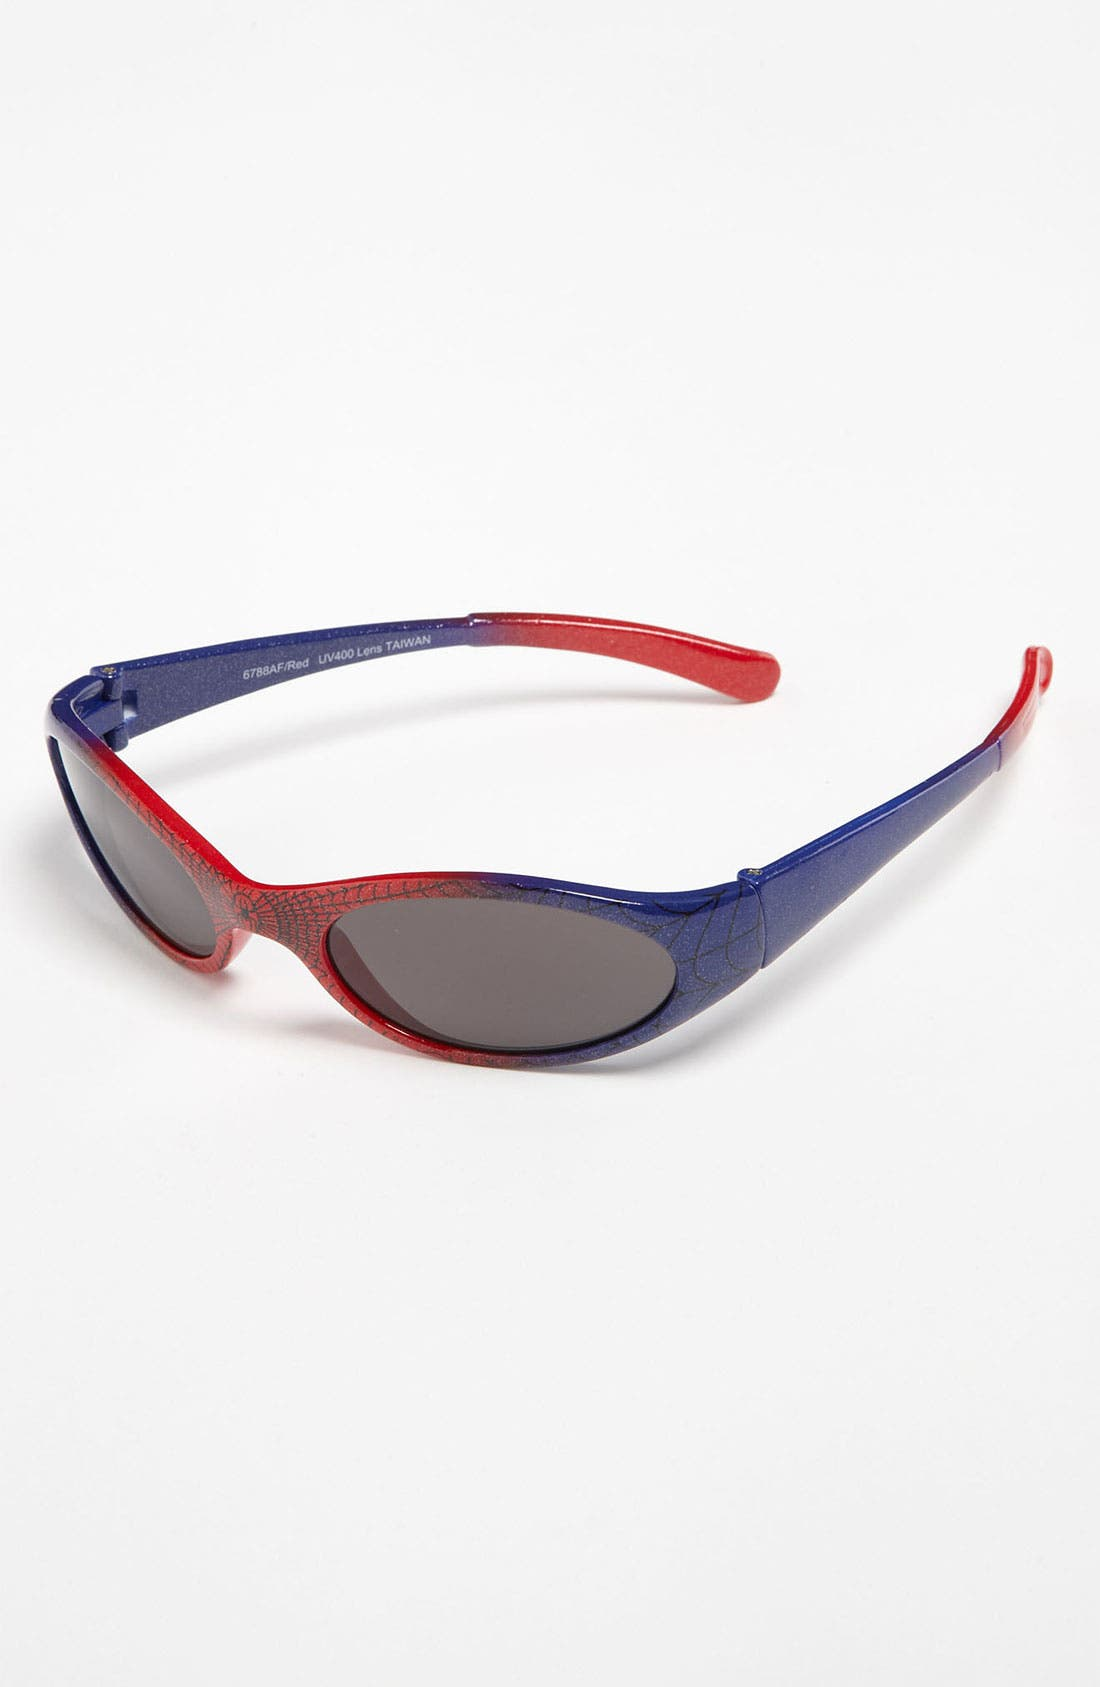 Alternate Image 1 Selected - KW 'Web' Sunglasses (Boys)